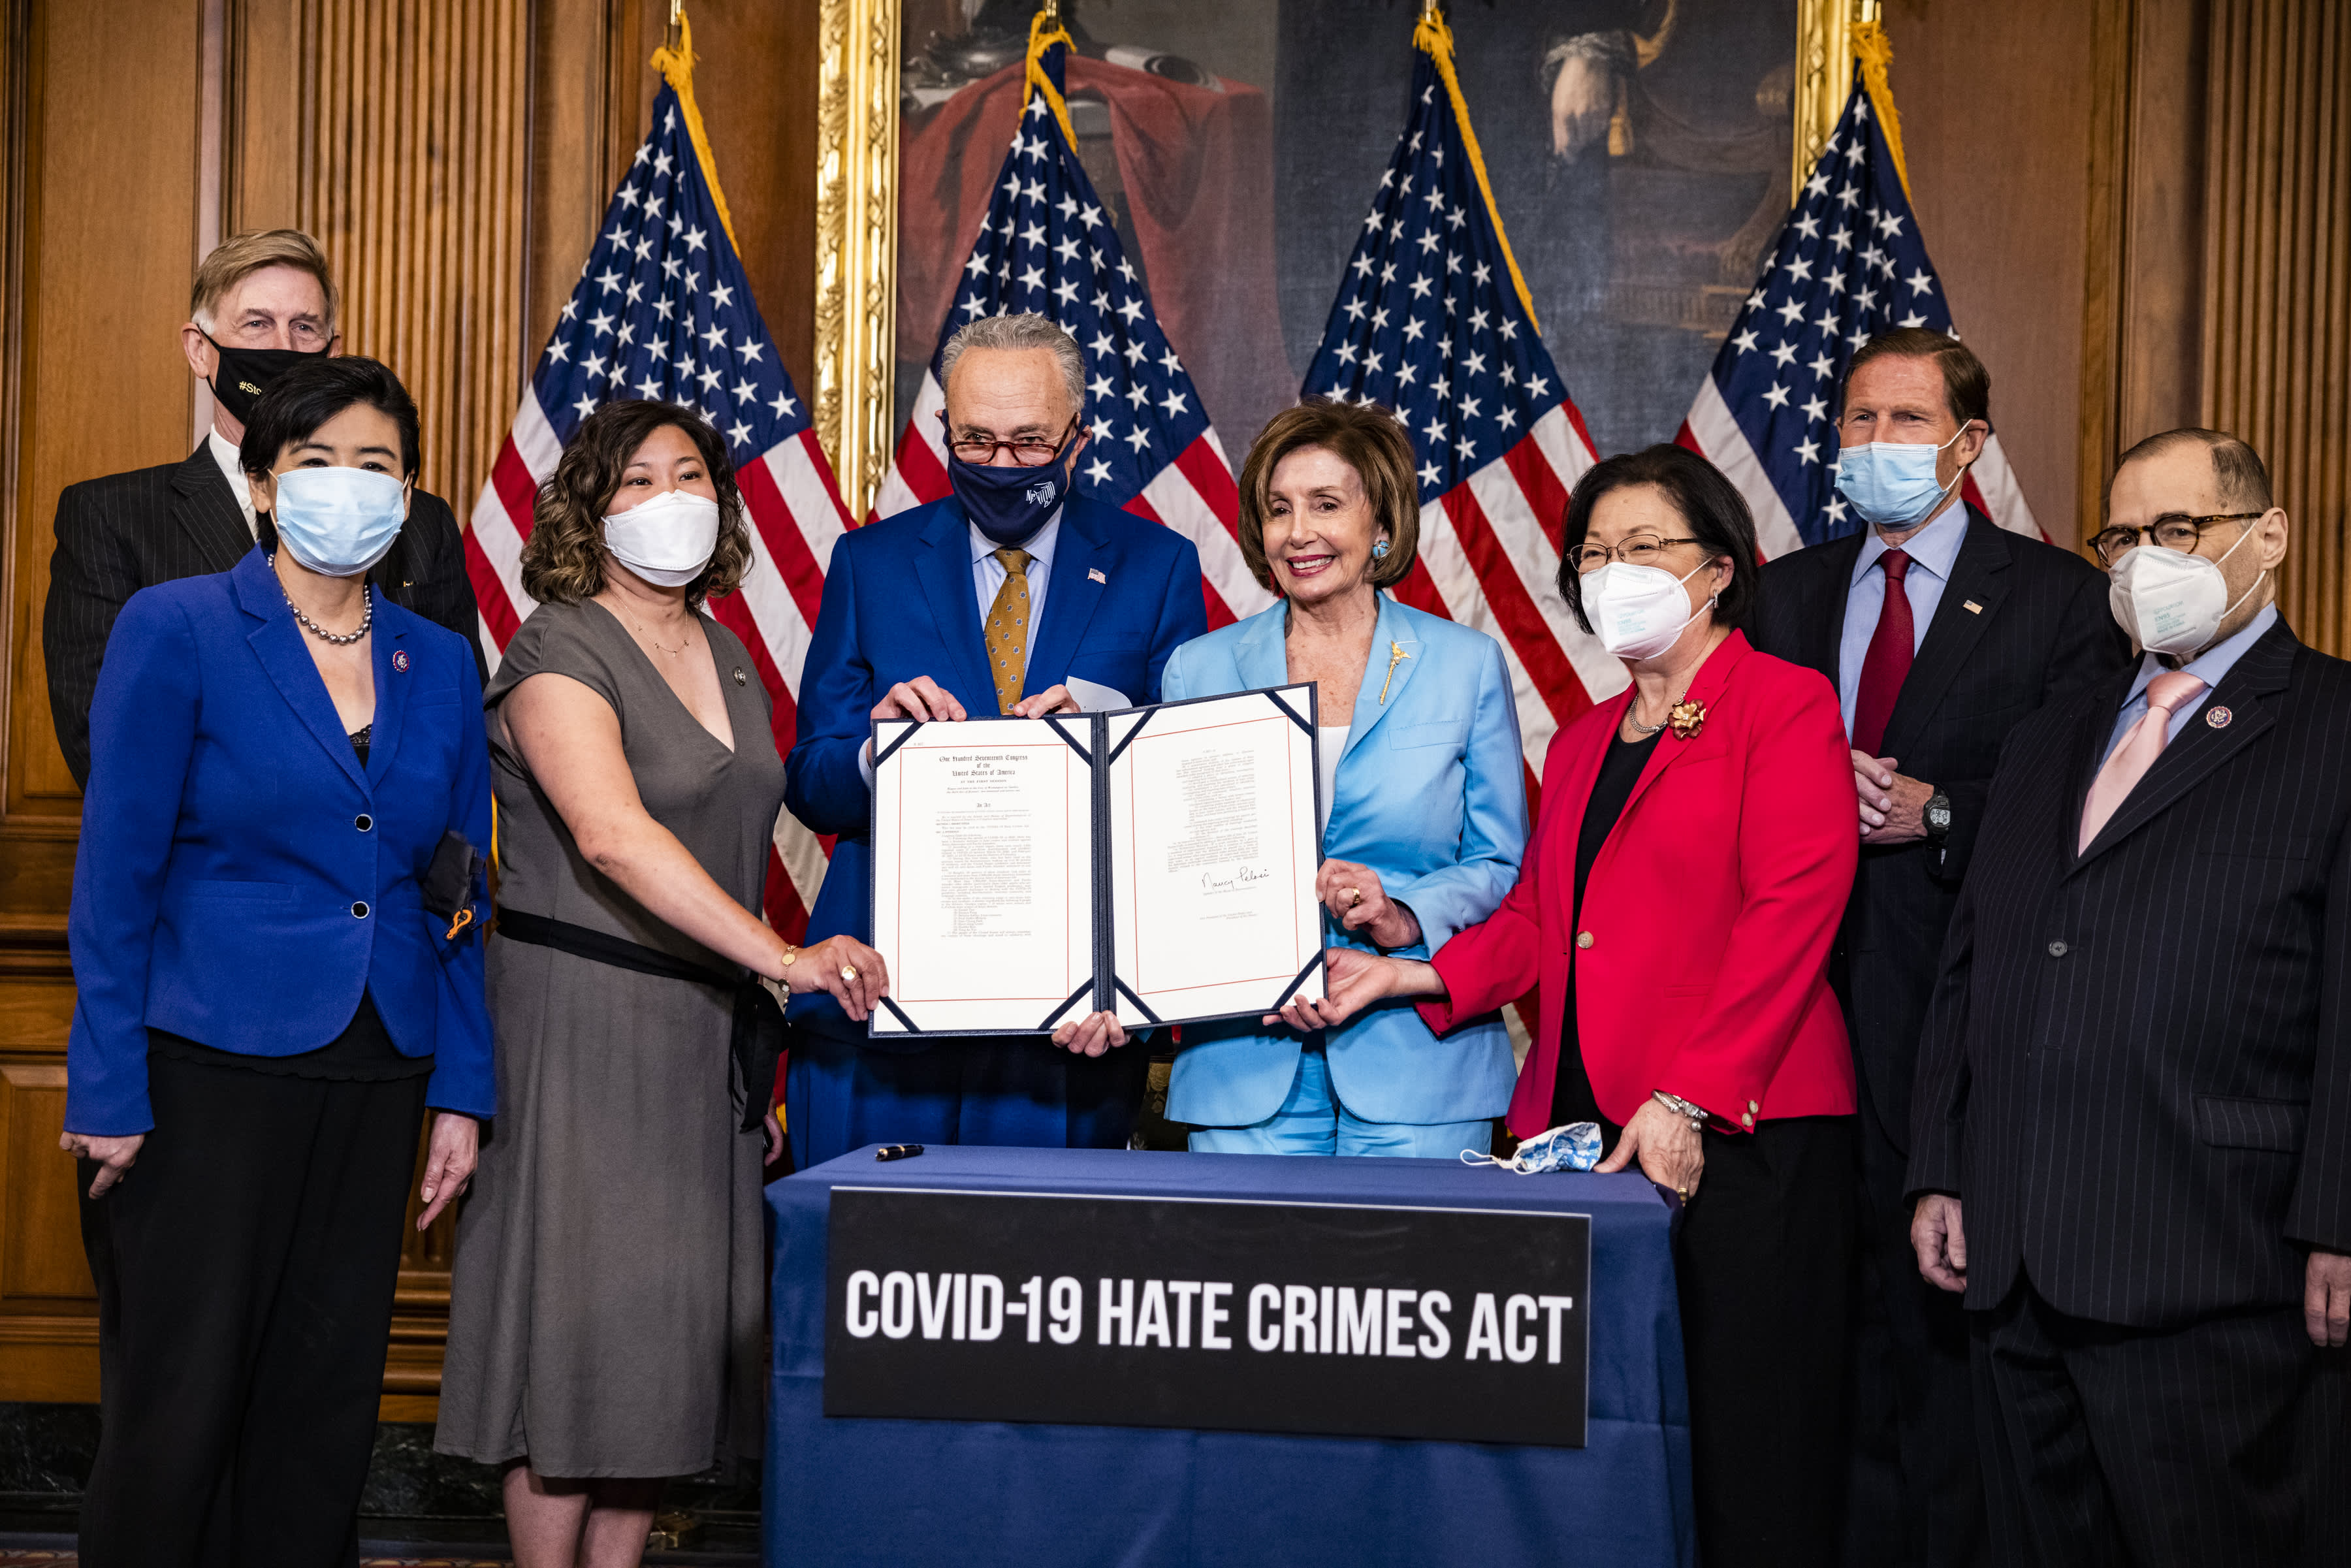 www.cnbc.com: House passes bill to curb hate crimes against Asian Americans, sends it to Biden